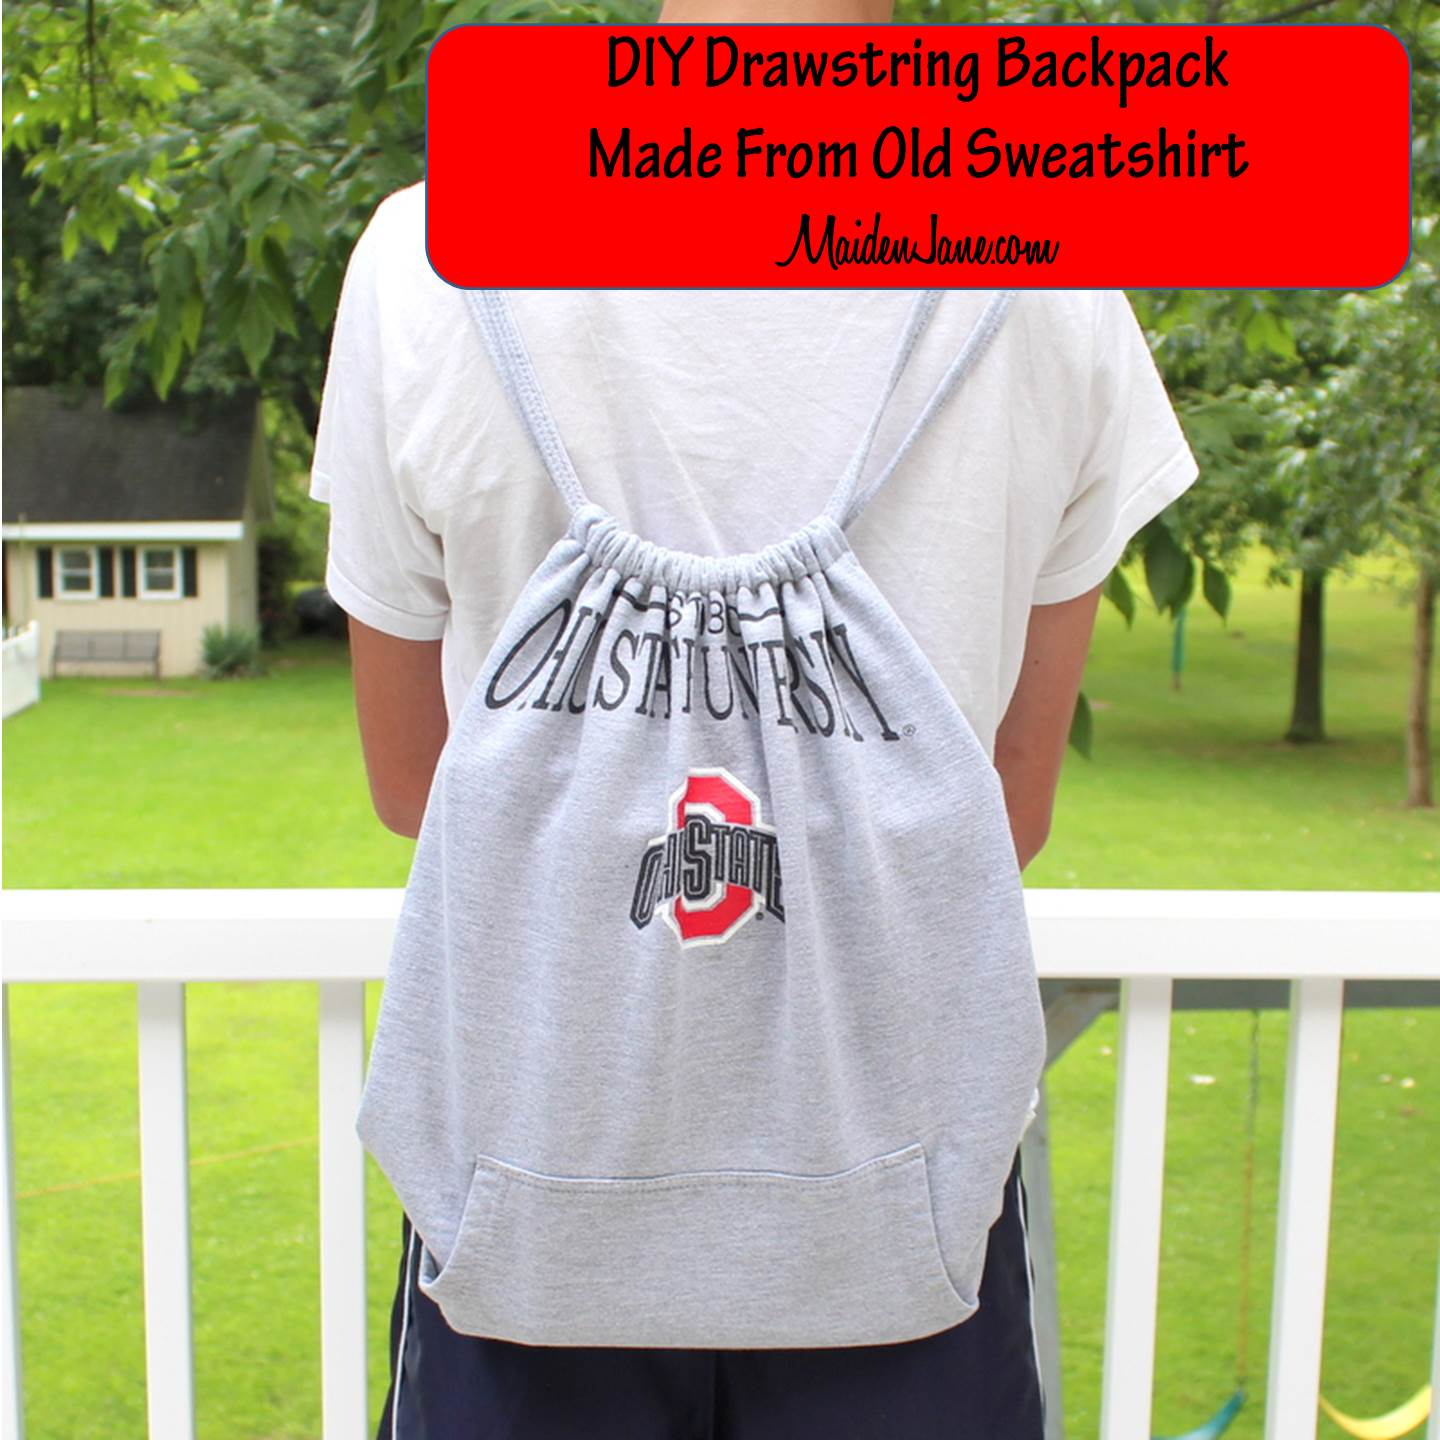 DIY Upcycled Sweatshirt to Drawstring Backpack